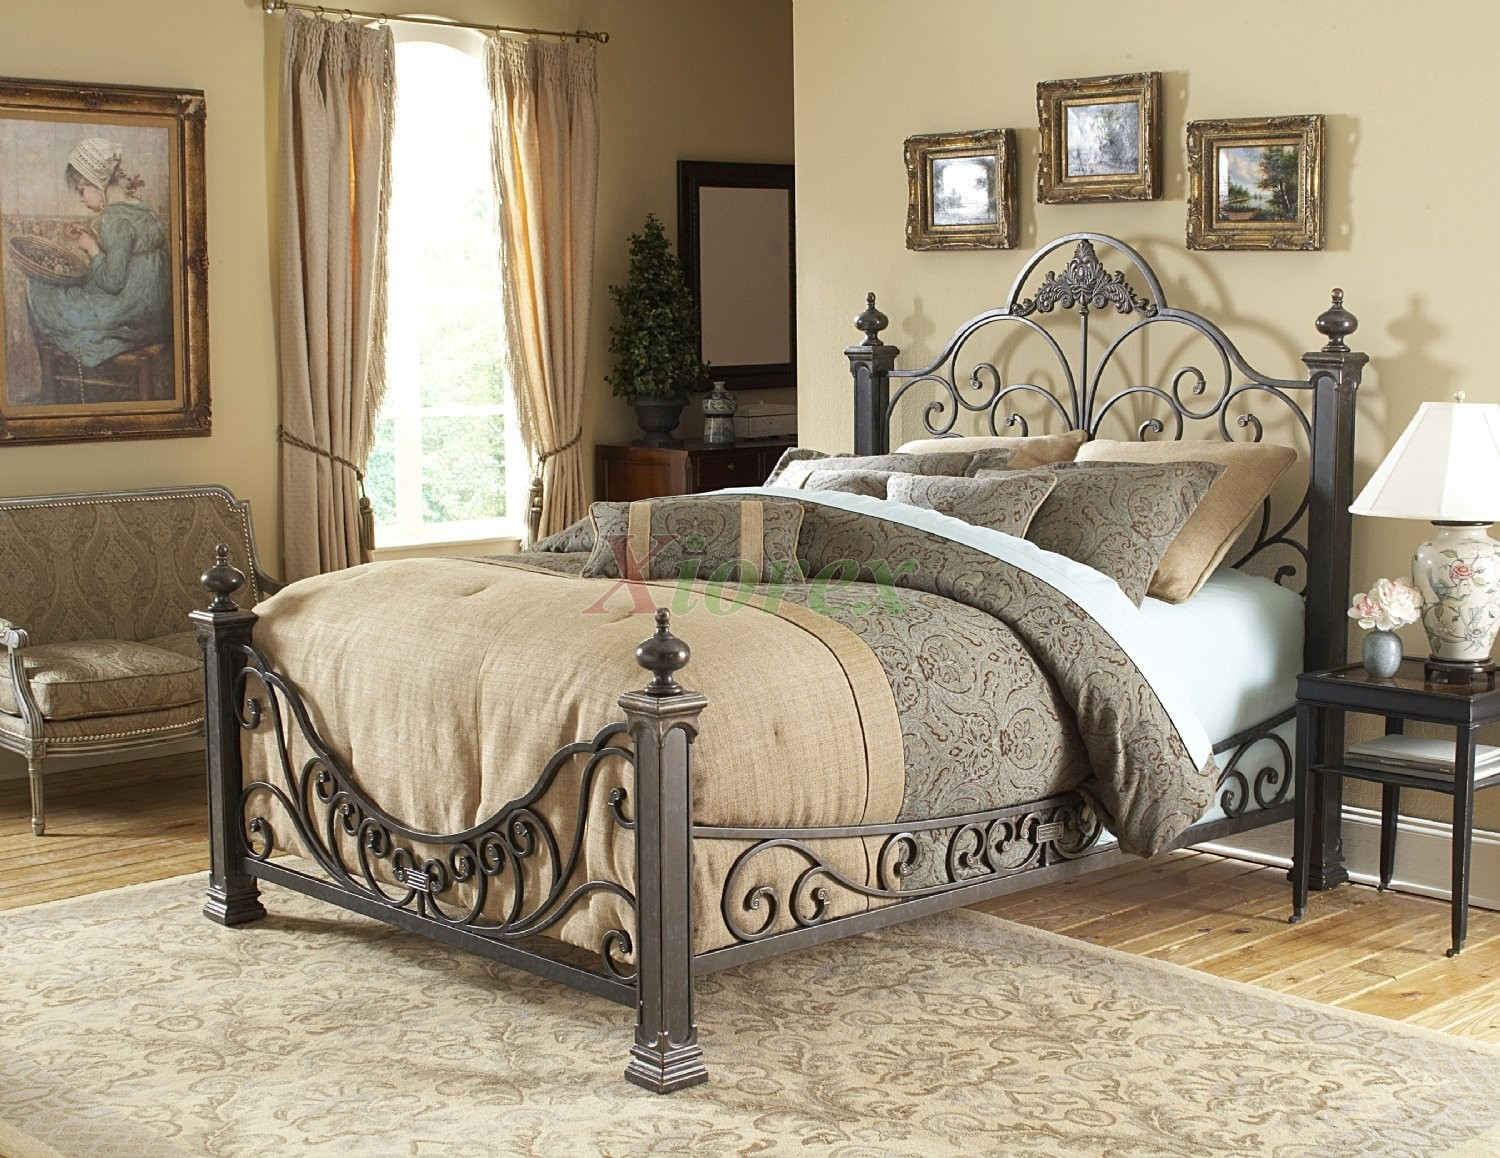 Fashion Bedroom Furniture Adorable Baroque Bed  Poster Bed In Gilded Slatefashion Bed Group  Xiorex Review